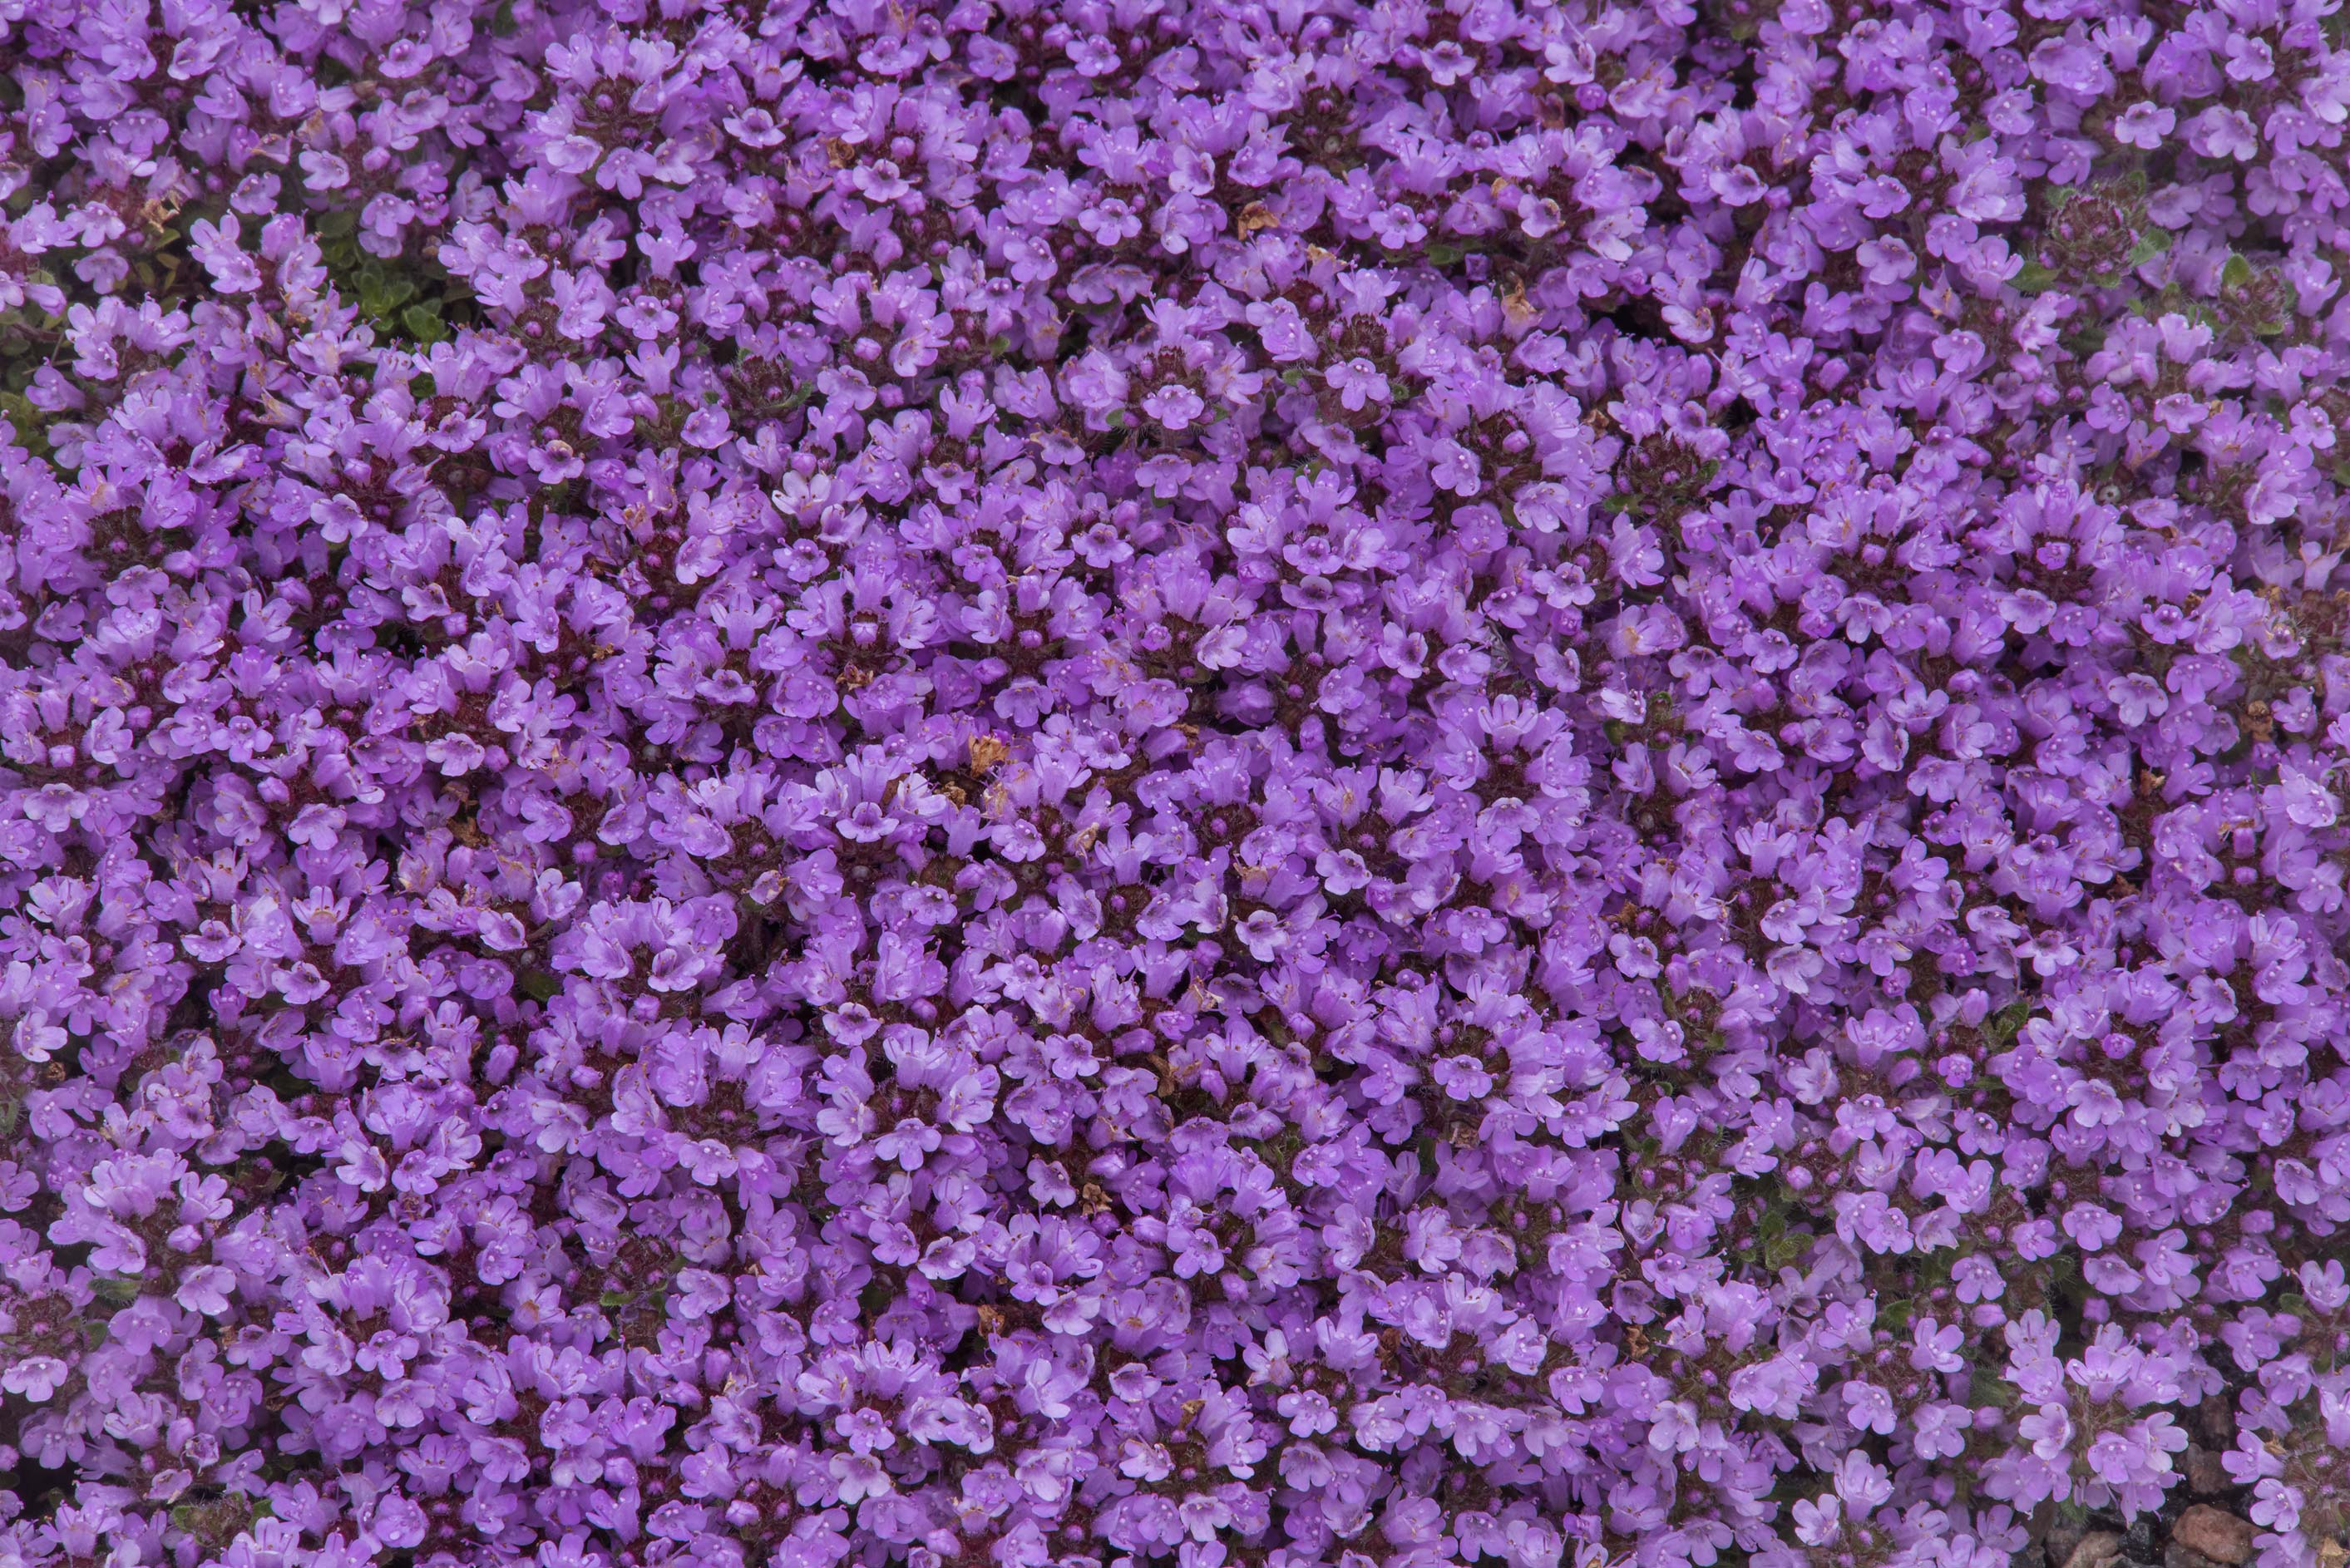 Carpet of flowers of thyme in Botanic Gardens of...Institute. St.Petersburg, Russia